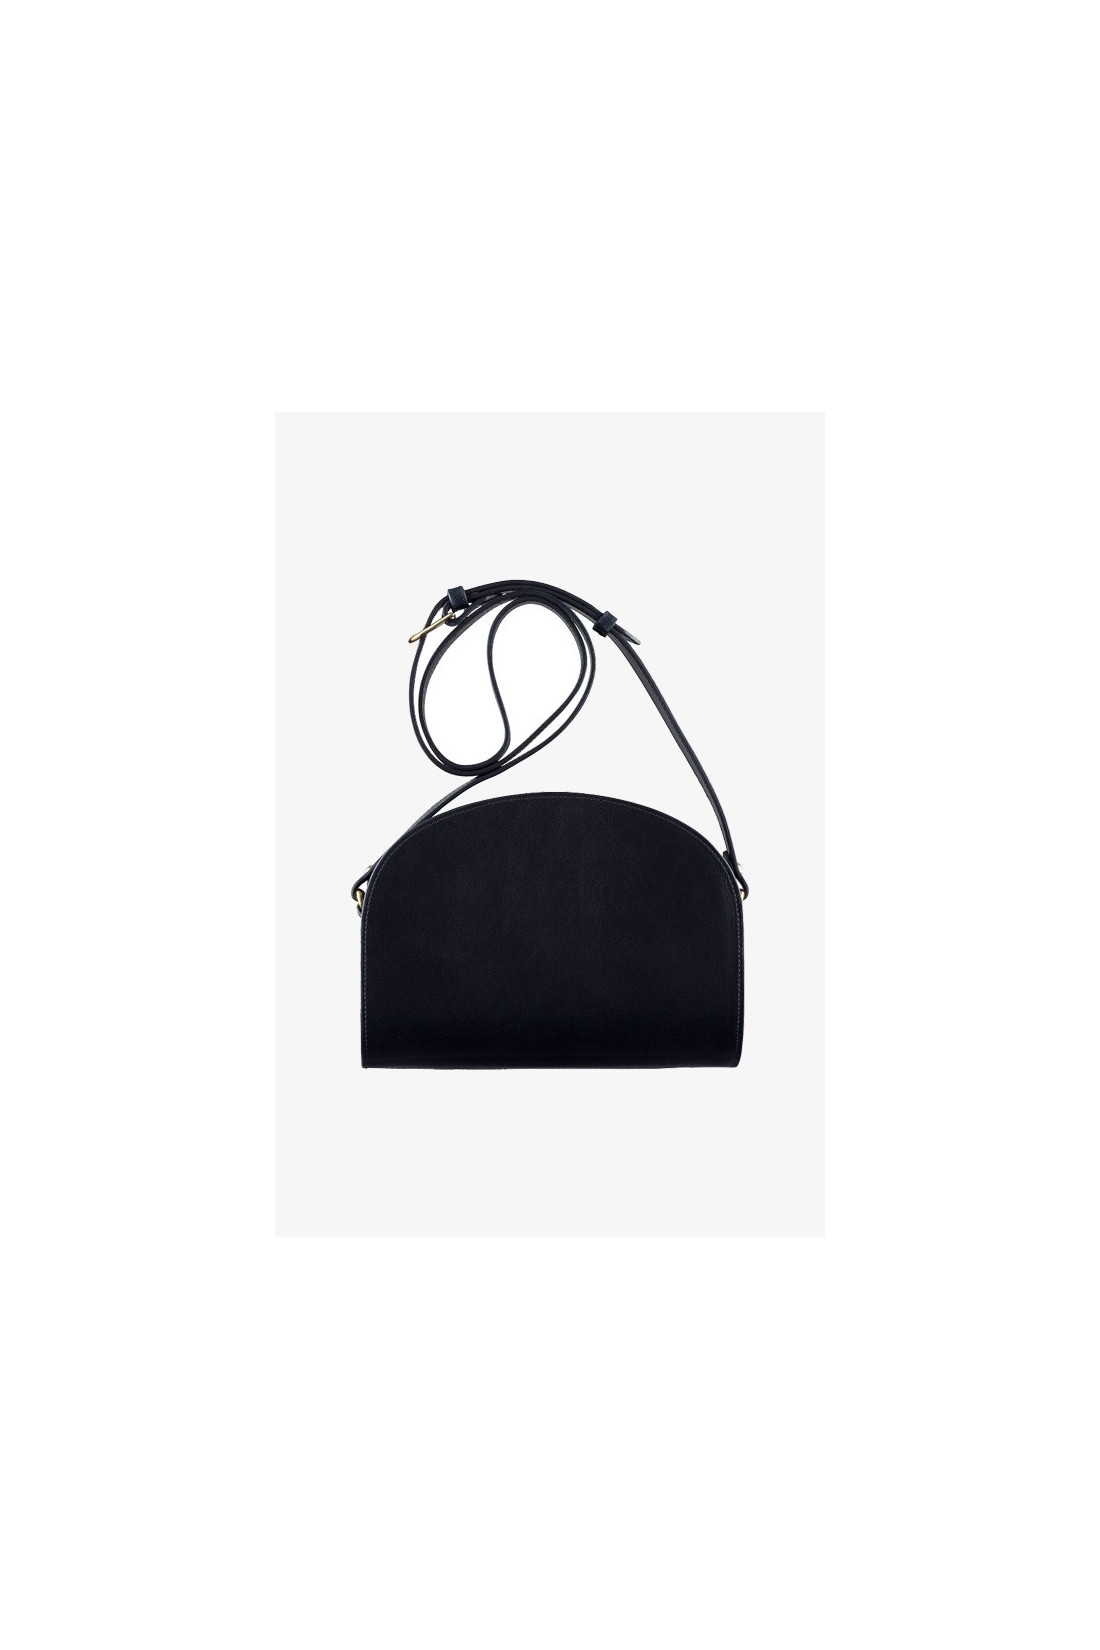 A.P.C. FOR WOMAN / Sac demi-lune Noir